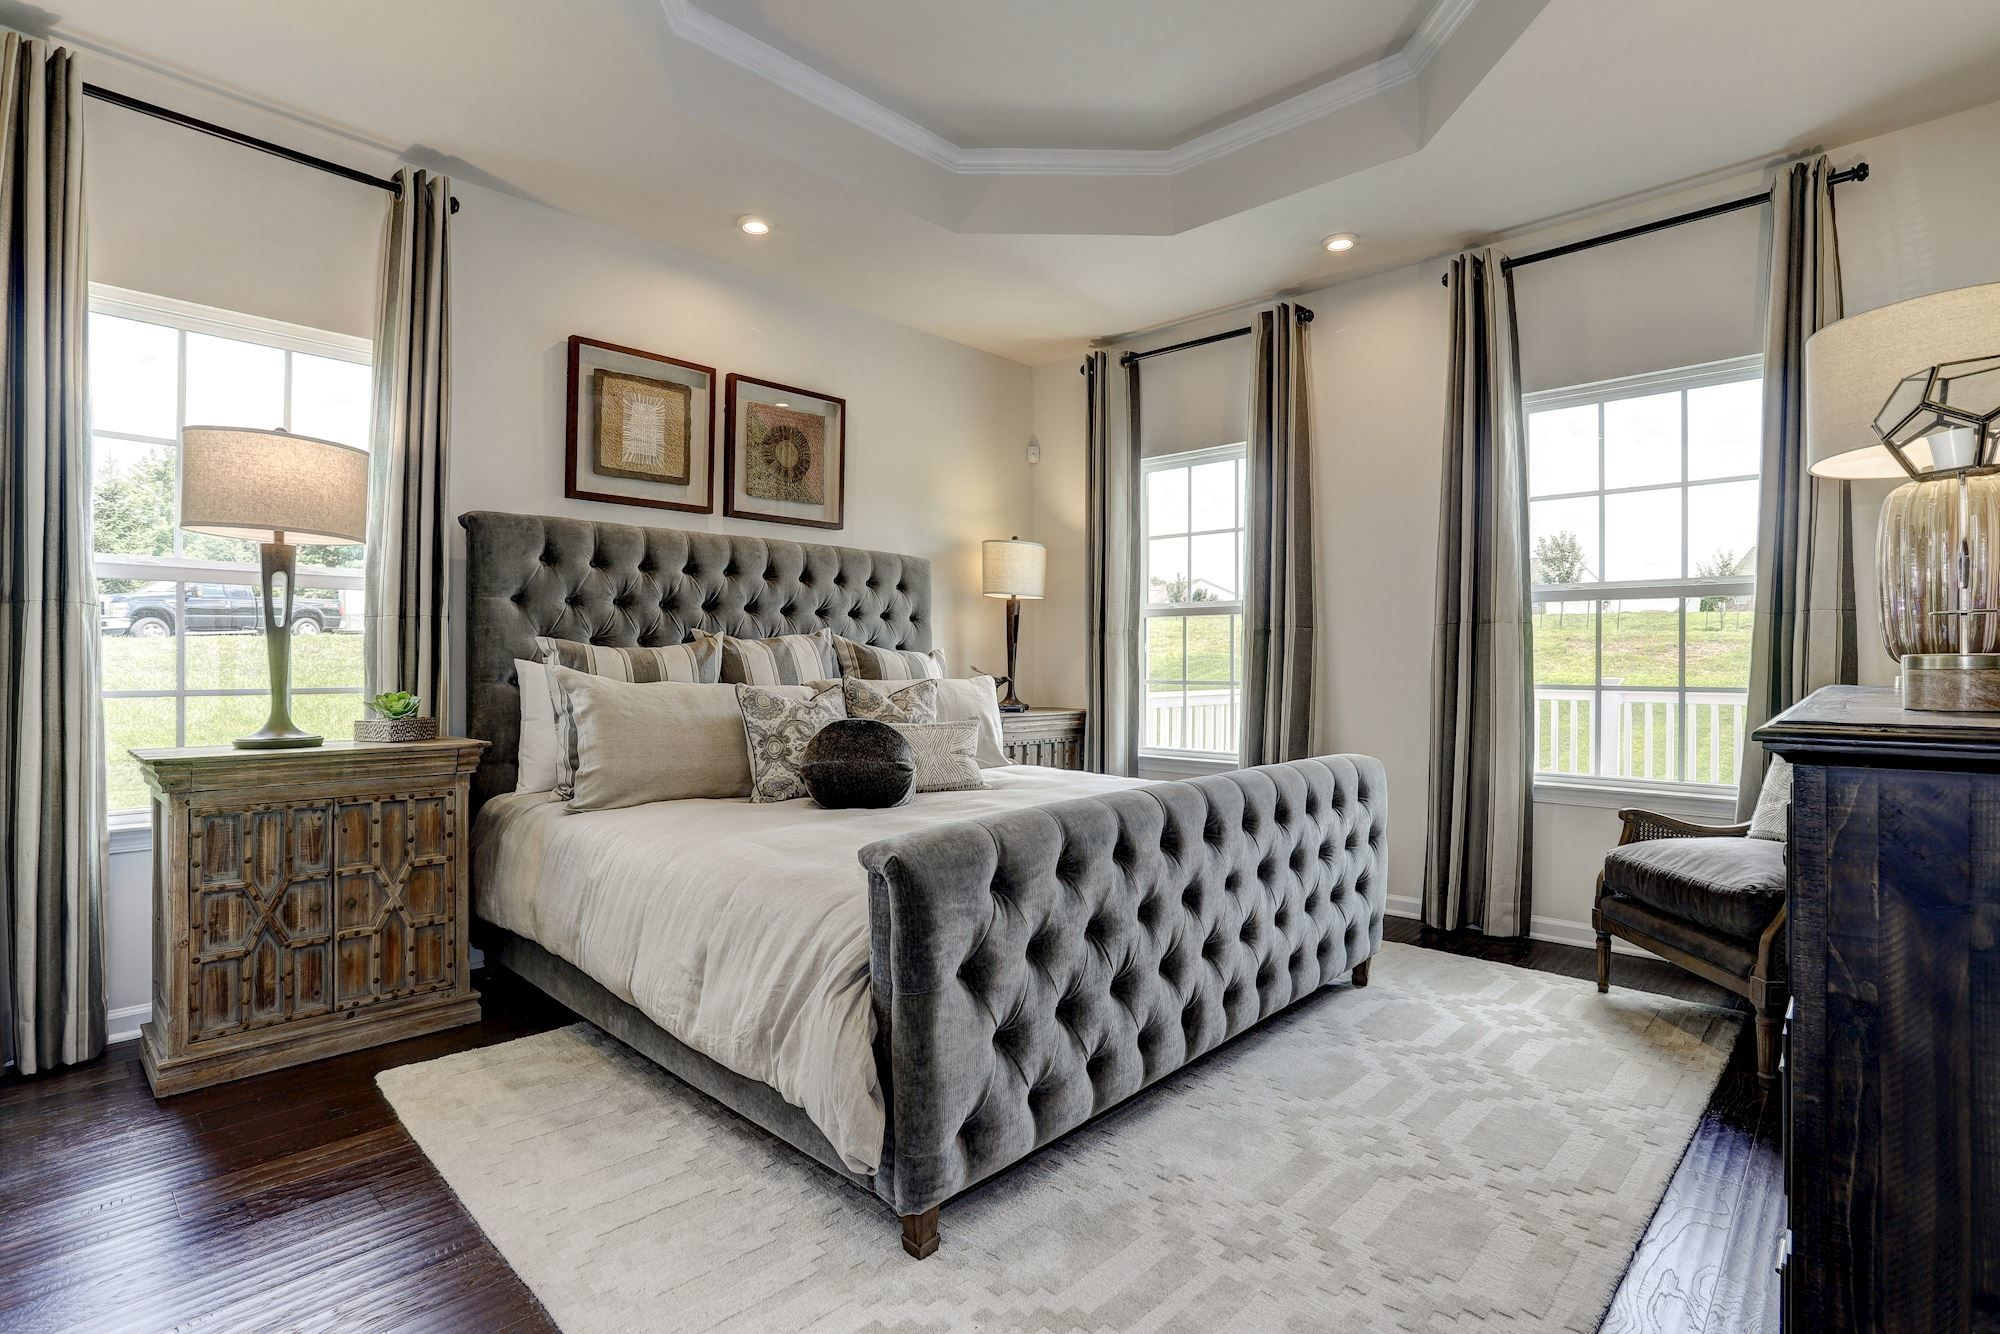 'The Villas at Gun Creek' by Ryan Homes-RCH in Buffalo-Niagara Falls